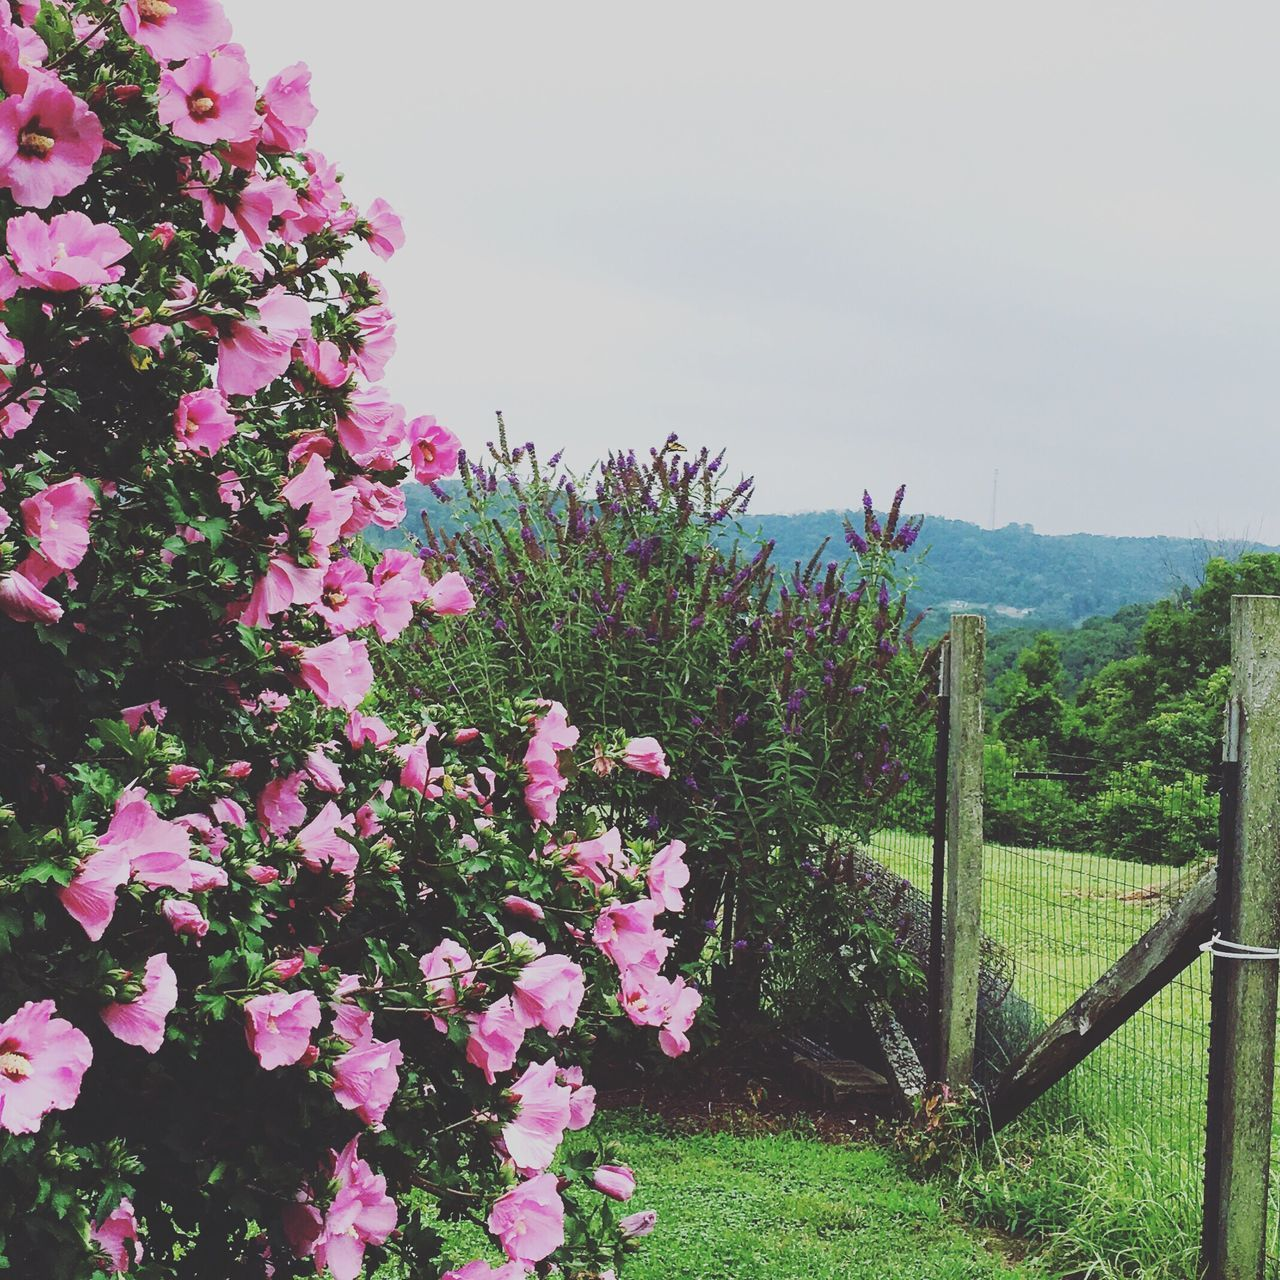 Rose Of Sharon Buddleia Butterfly Bush Pink Purple Bush Beauty In Nature Outdoors Fence Flowers